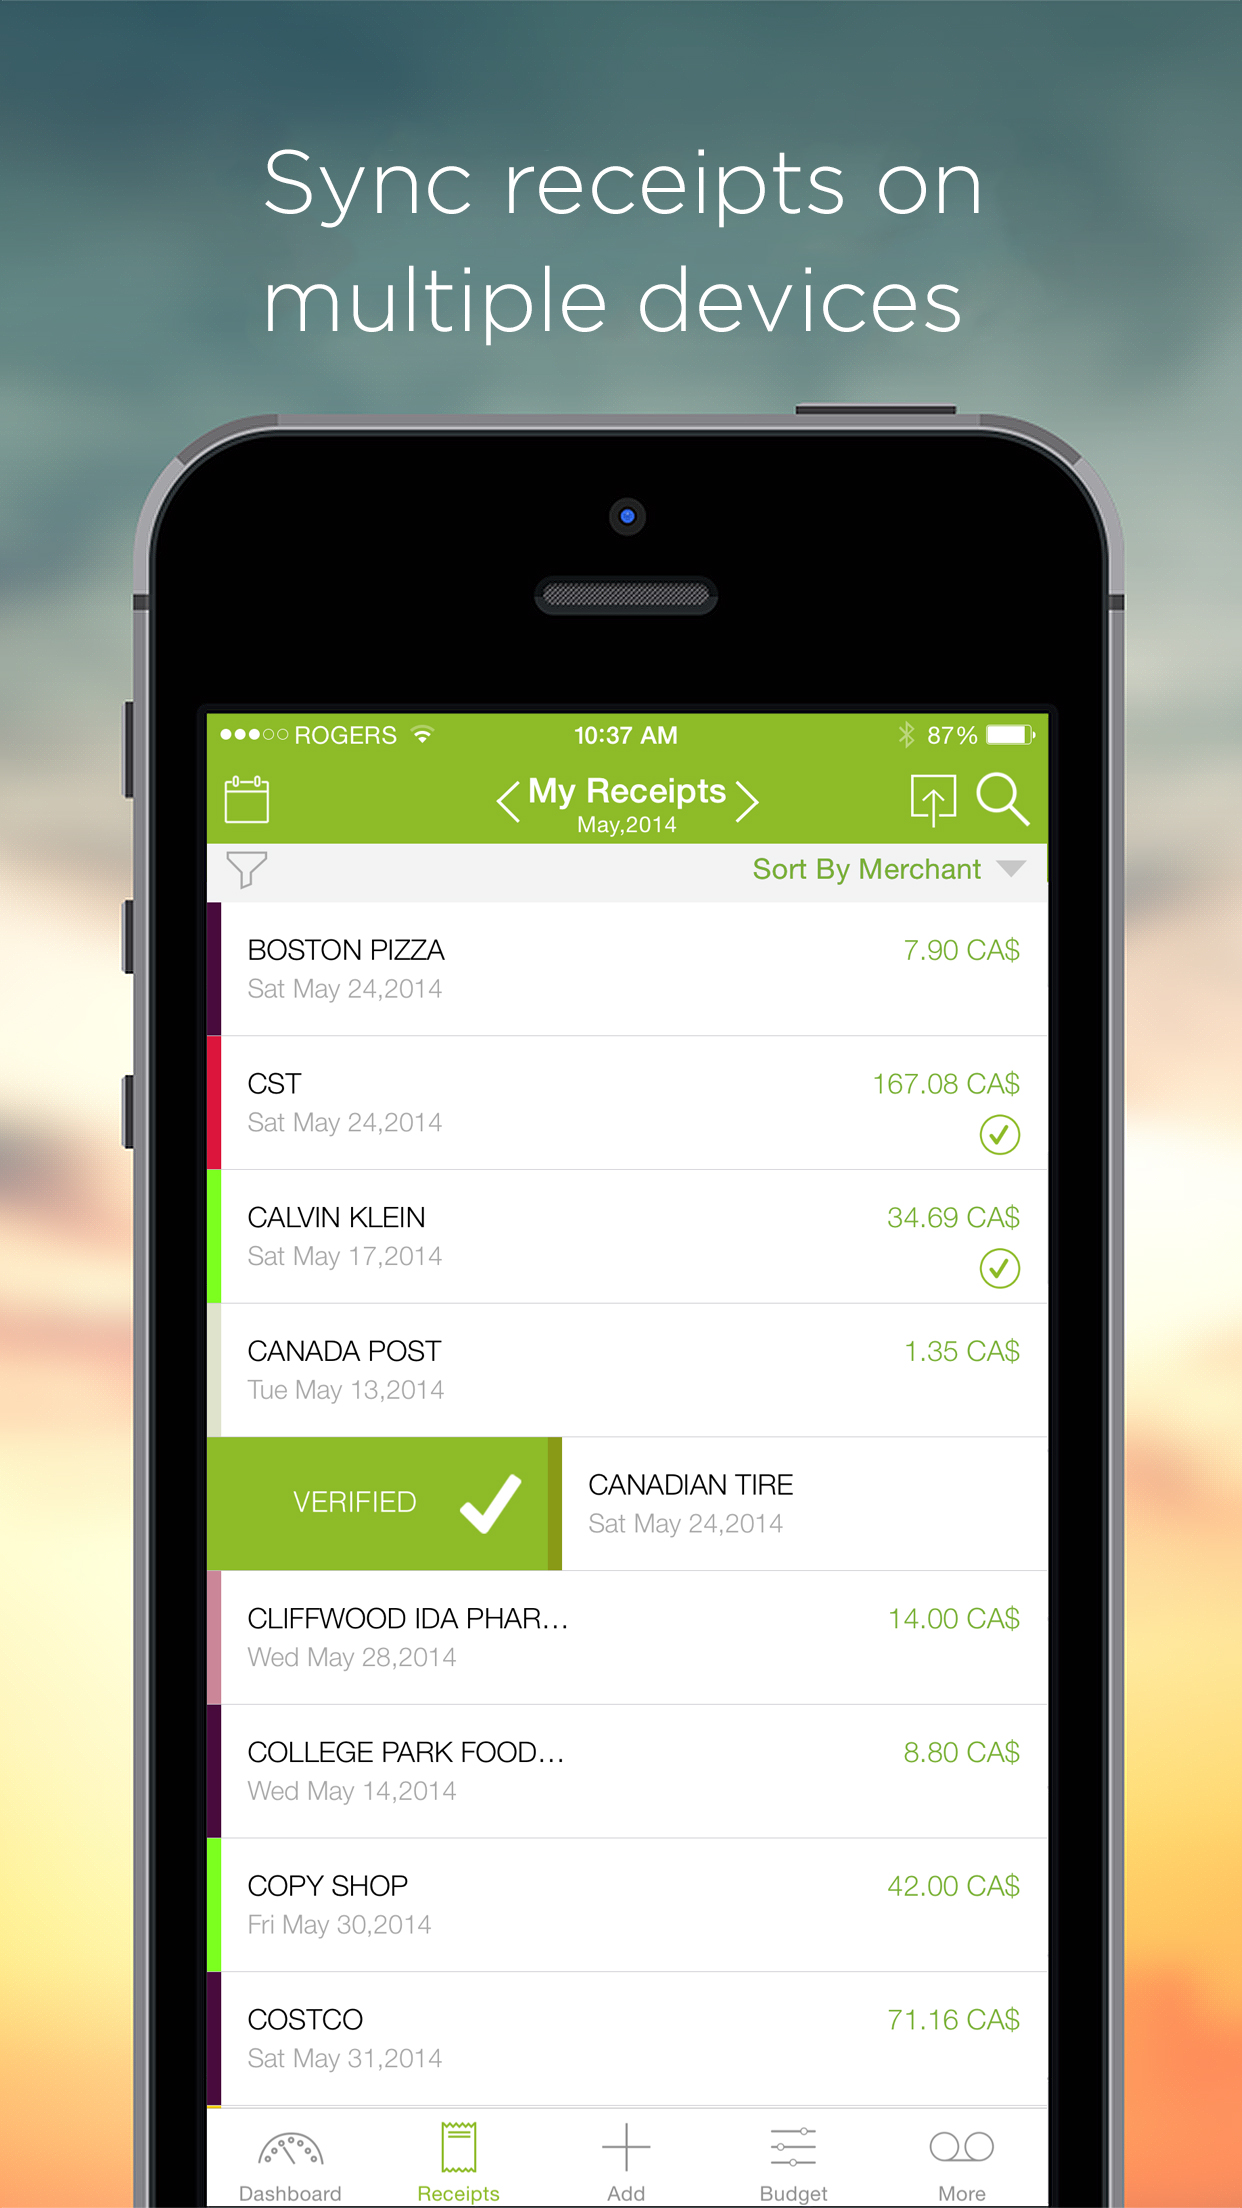 Foreceipt Receipt Manager- Daily Expense & Incomes Tracker,Personal Financial Planning & Monthly Budget Planner